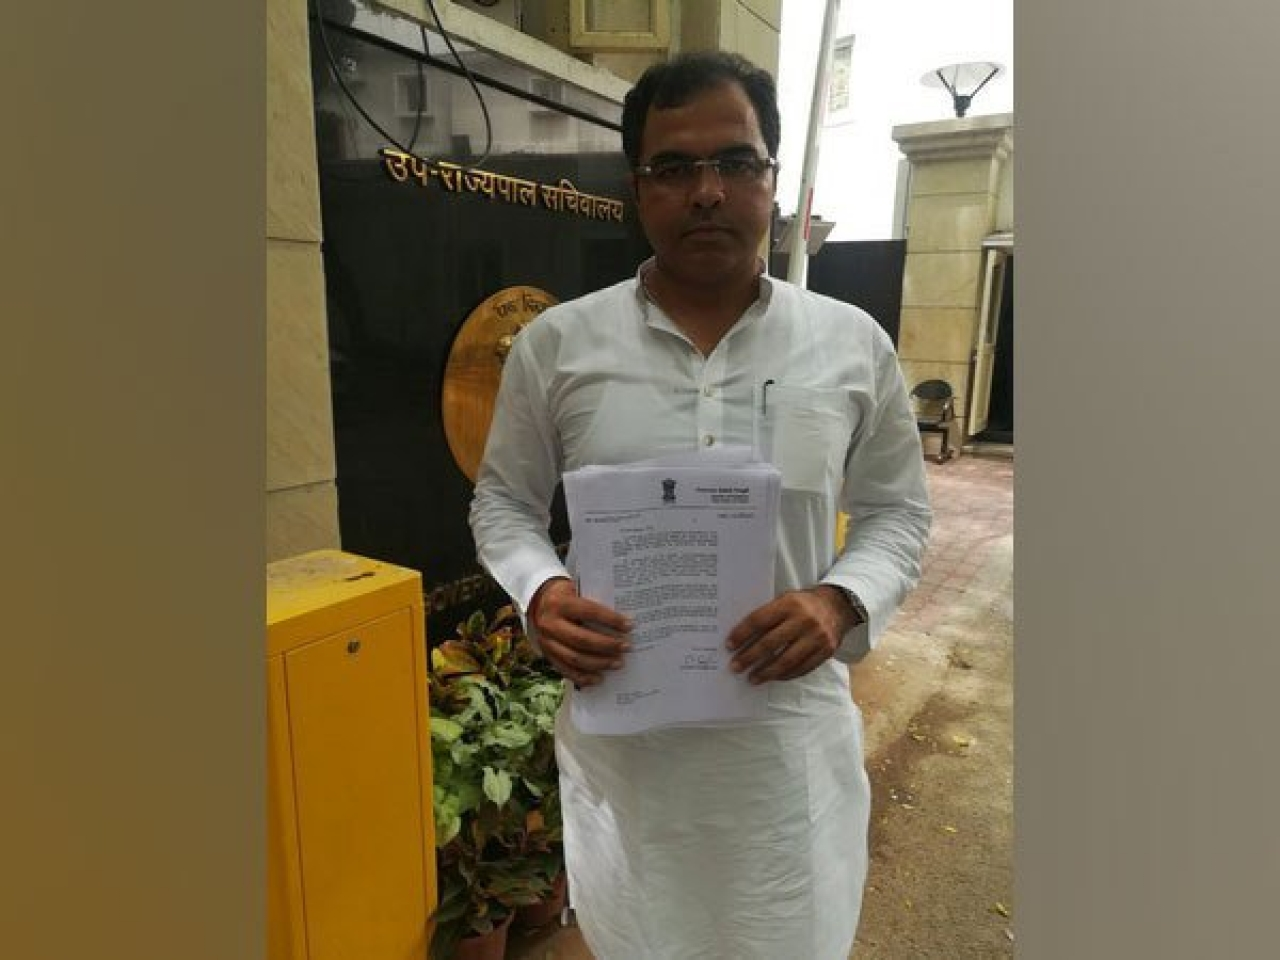 Delhi BJP MP Submits List Of Illegally Constructed Mosques On Public Land To Lieutenant Governor, Demands Action